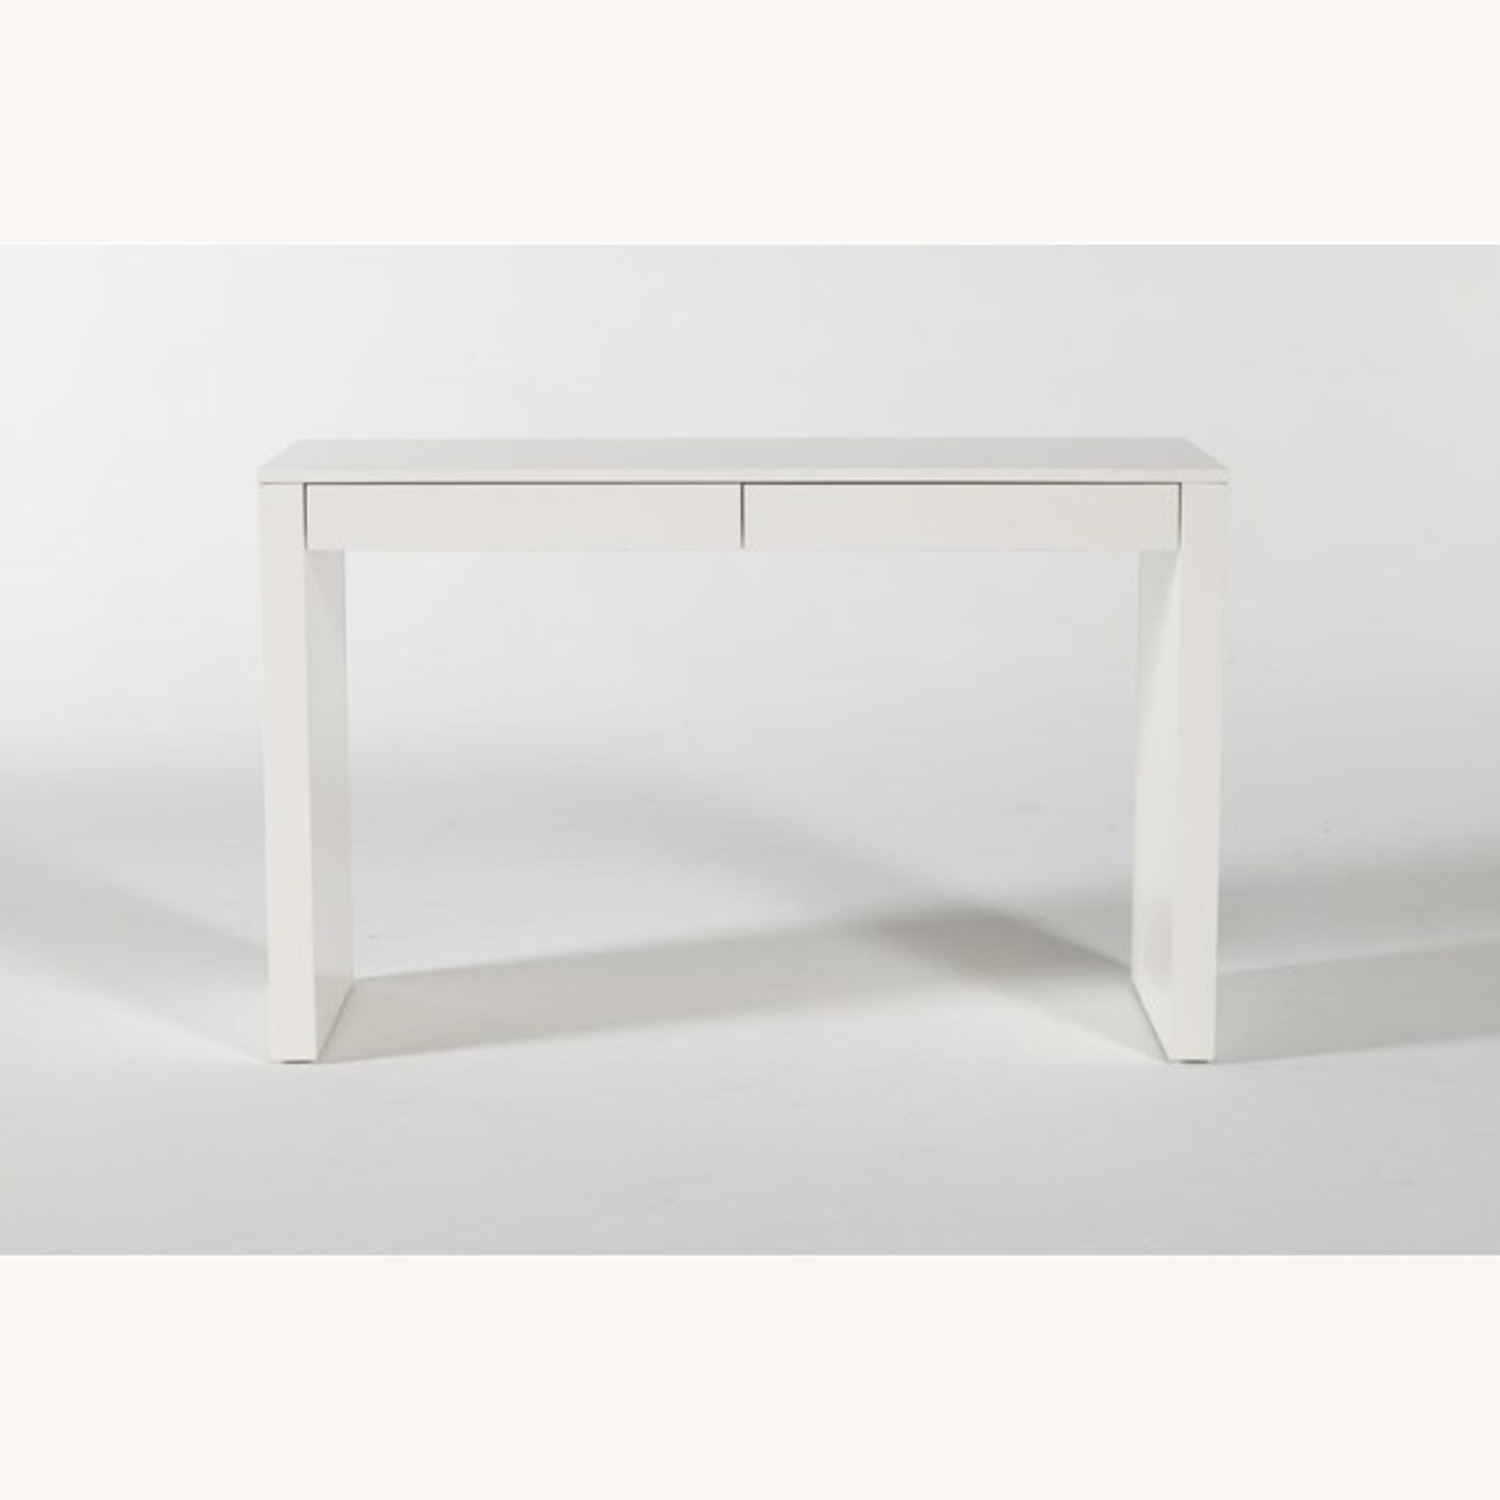 IKEA White Waterfall Desk Console Table w Drawers - image-3